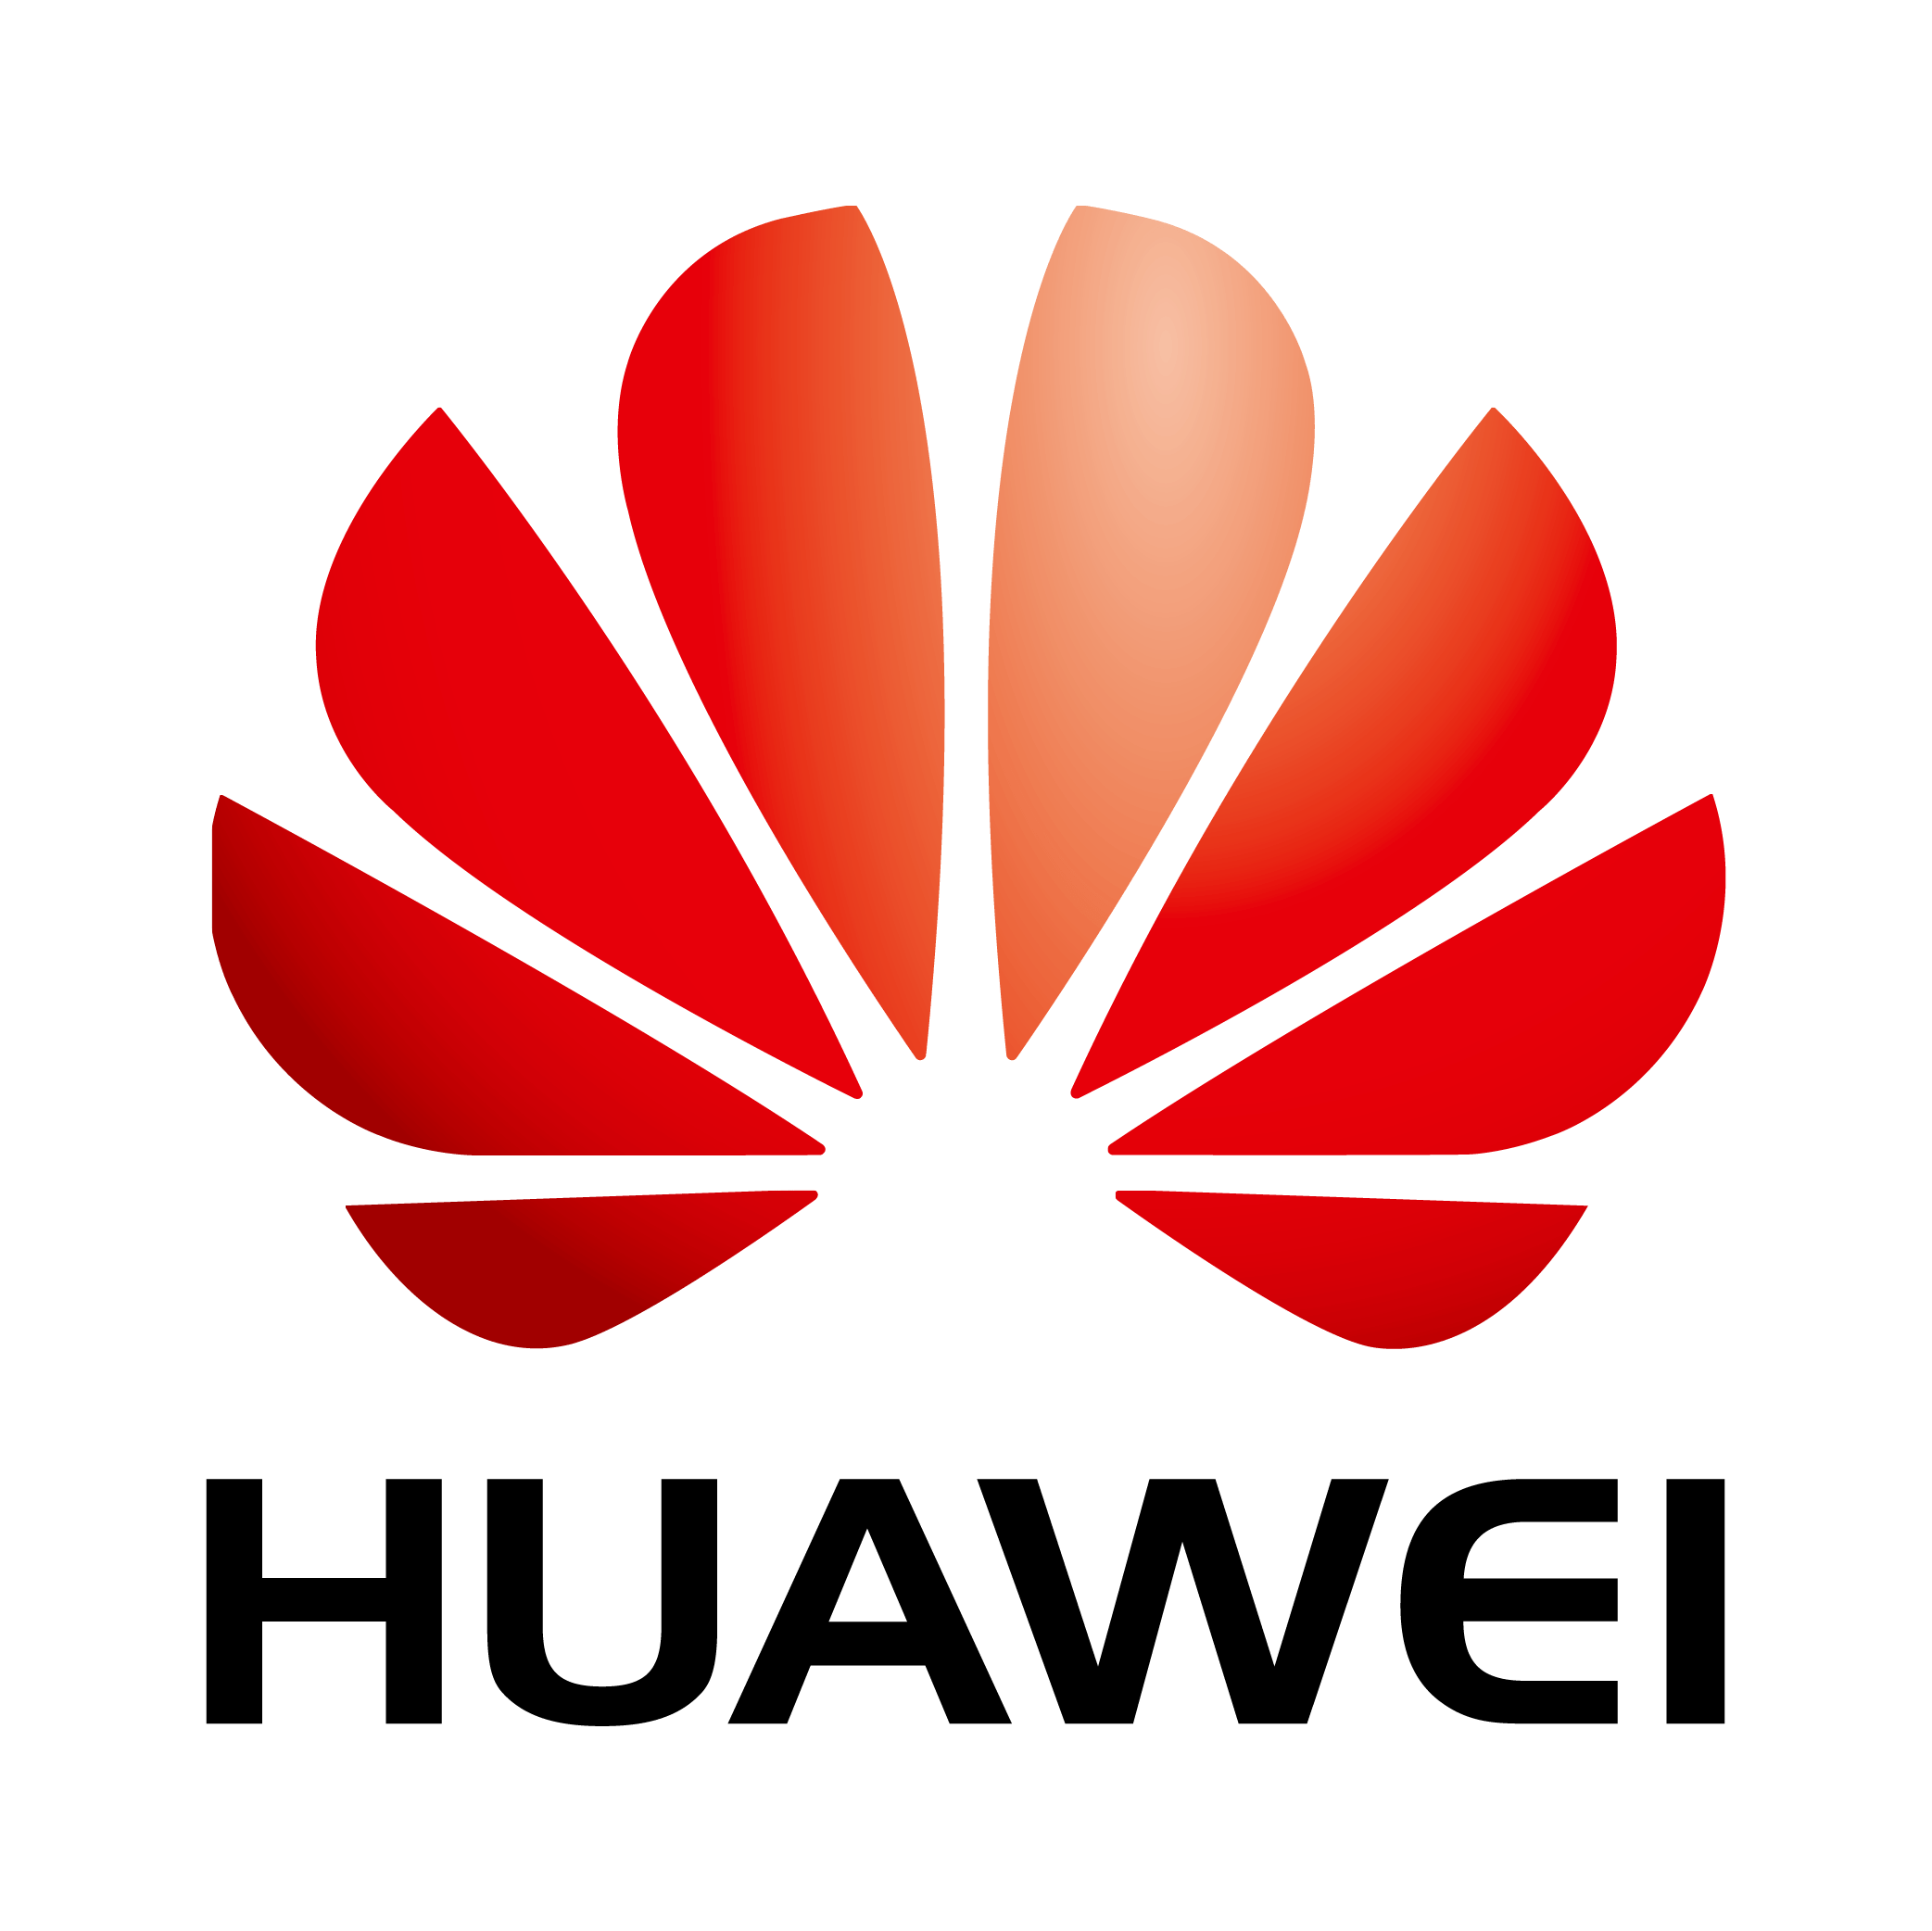 kisspng-logo-huawei-169126-network-2311cxh-bc2mfgec-sm212-iphone-insurance-get-protected-today-at-a-low-cost-5b96d9bd3236f1.5543844115366127972057.png